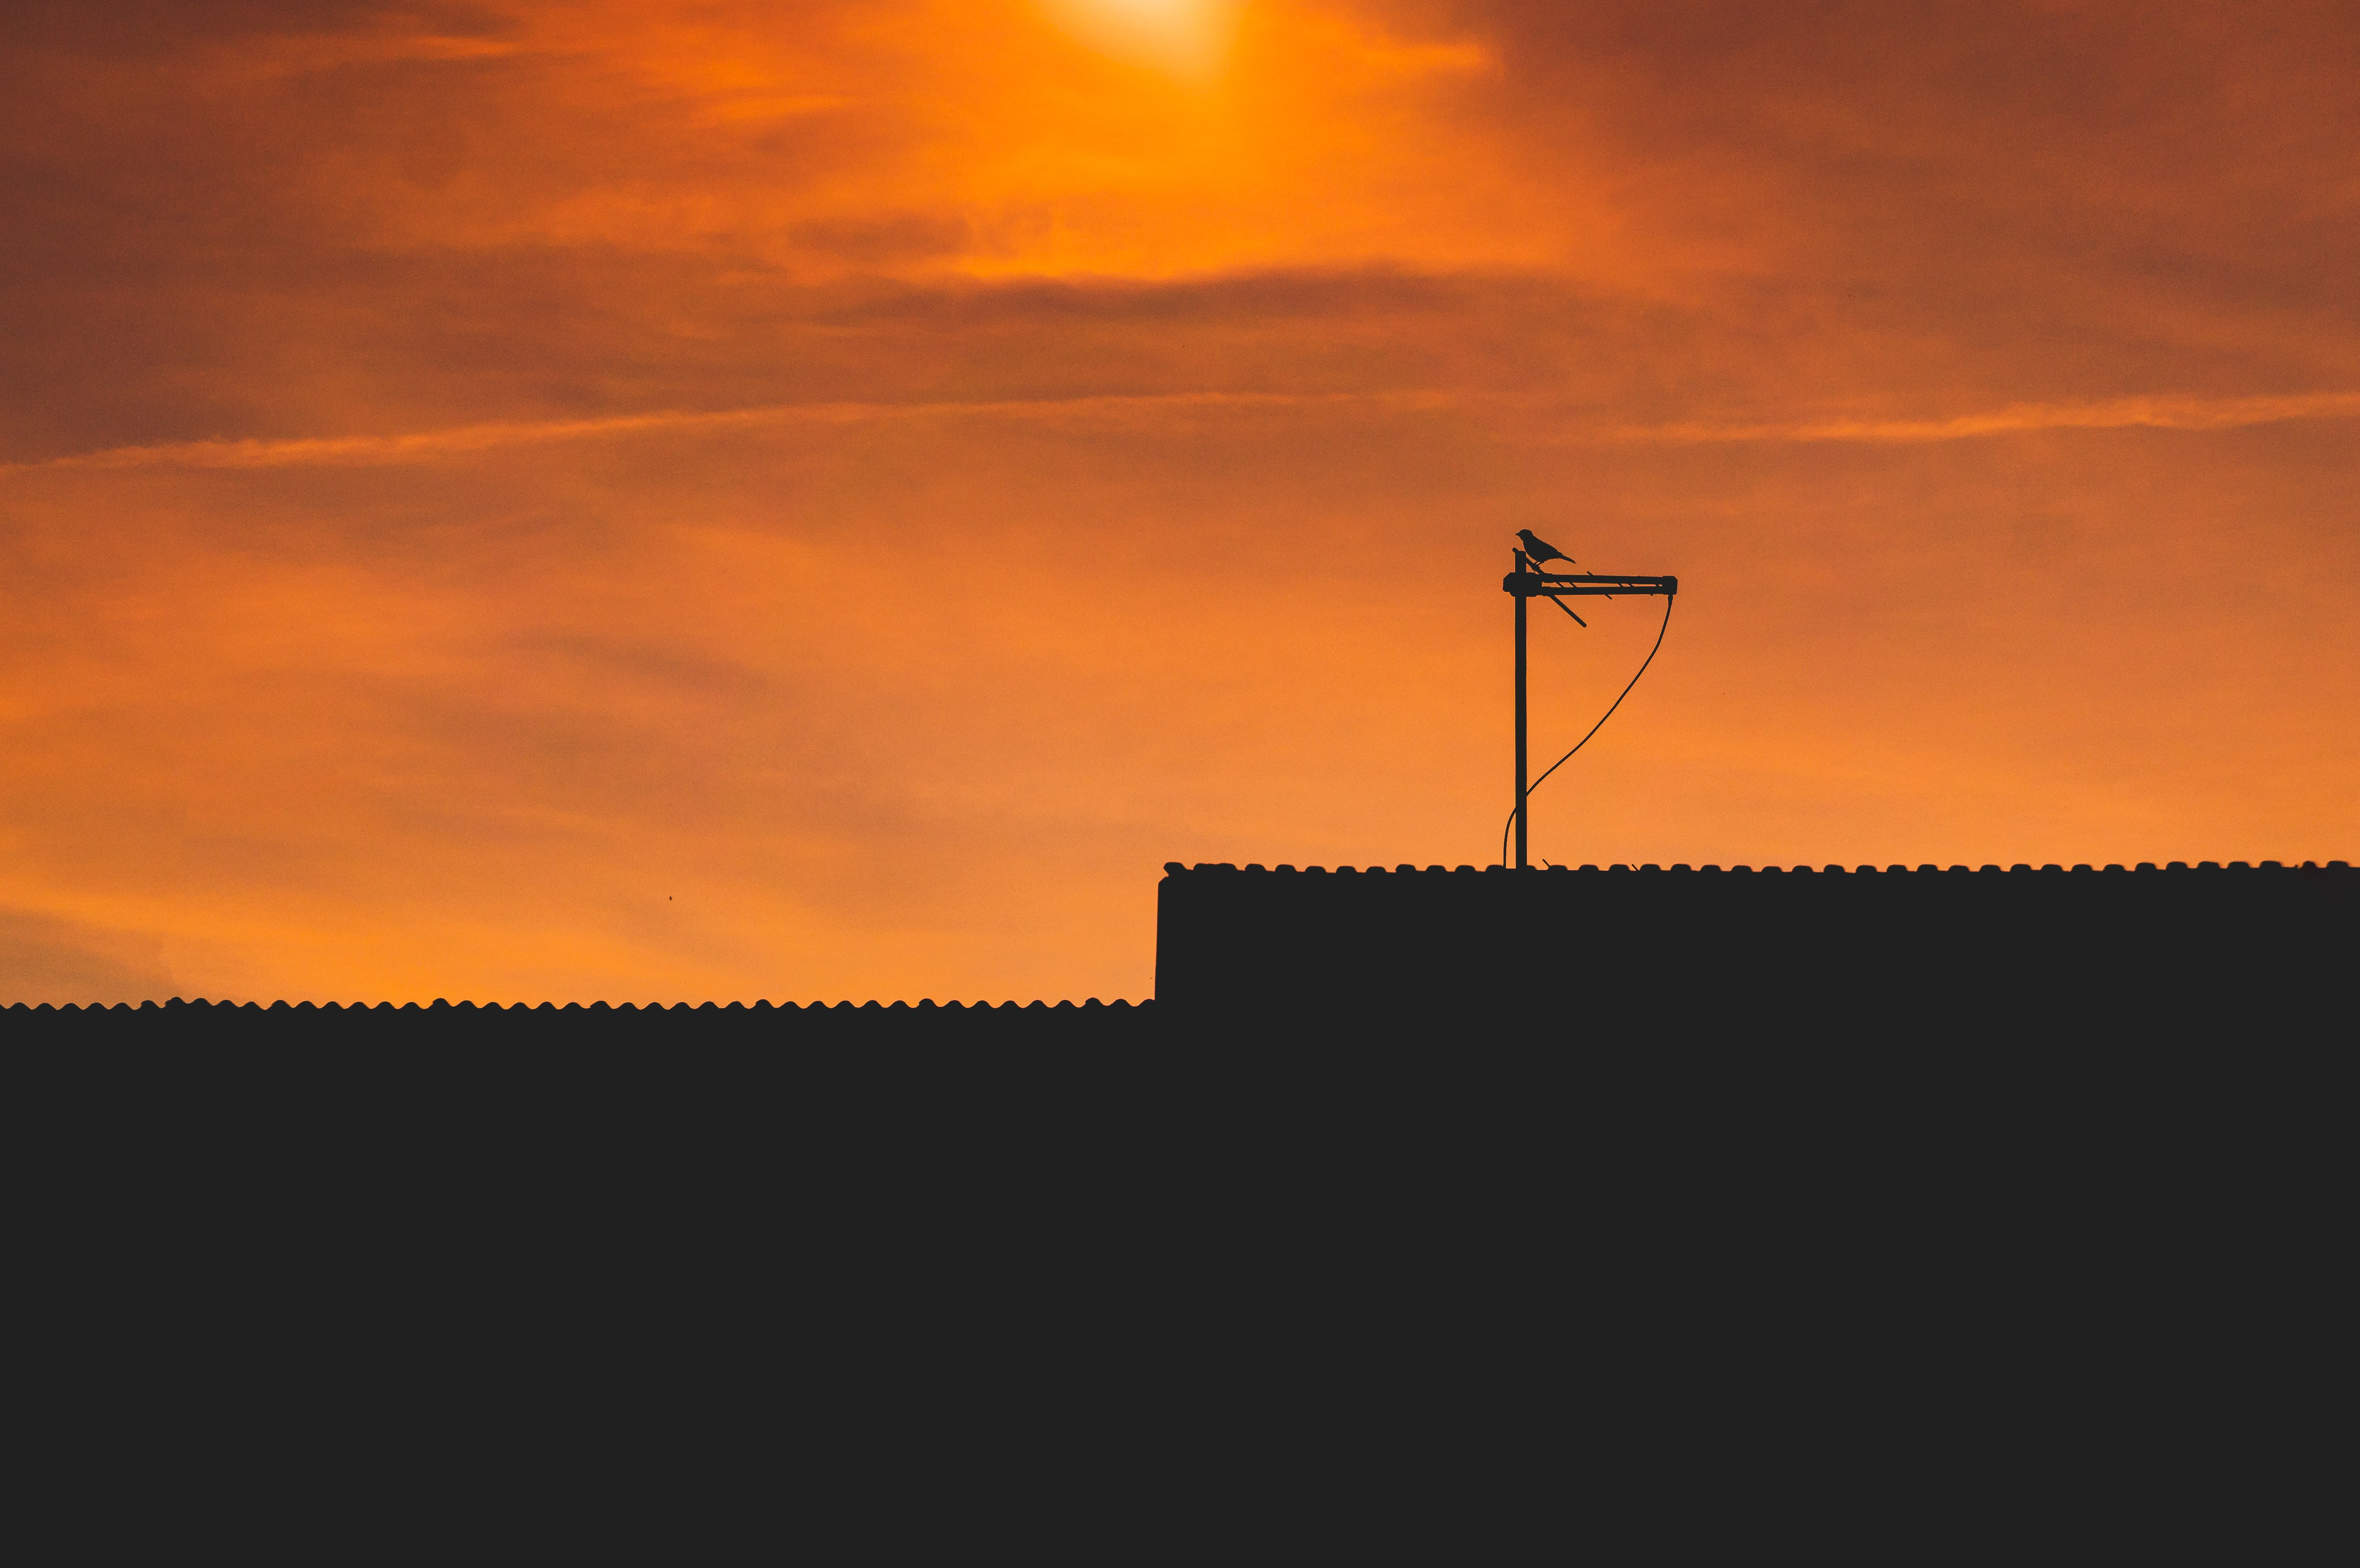 silhouette of antenna on roof